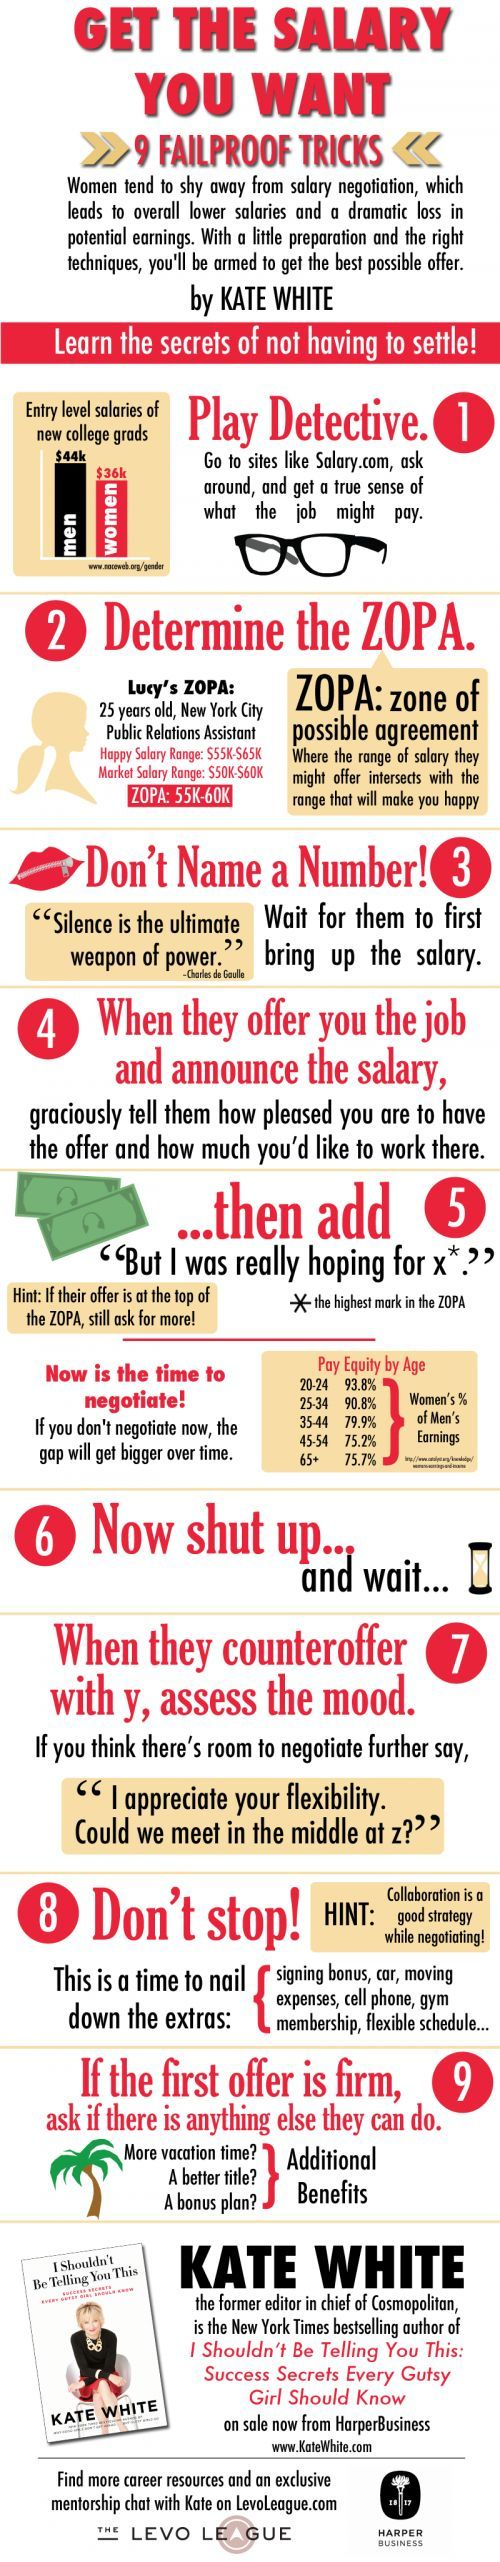 Negotiating salary is a particularly touchy and somewhat difficult situation. There are a lot of different schools of thought on how a job seeker should handle talking about salary in a job interview. Should you ask first? Should you ask at all? If they ask you about your salary expectations, what should you say? Not knowing how to navigate these waters can leave you drowning in a sea of confusion.